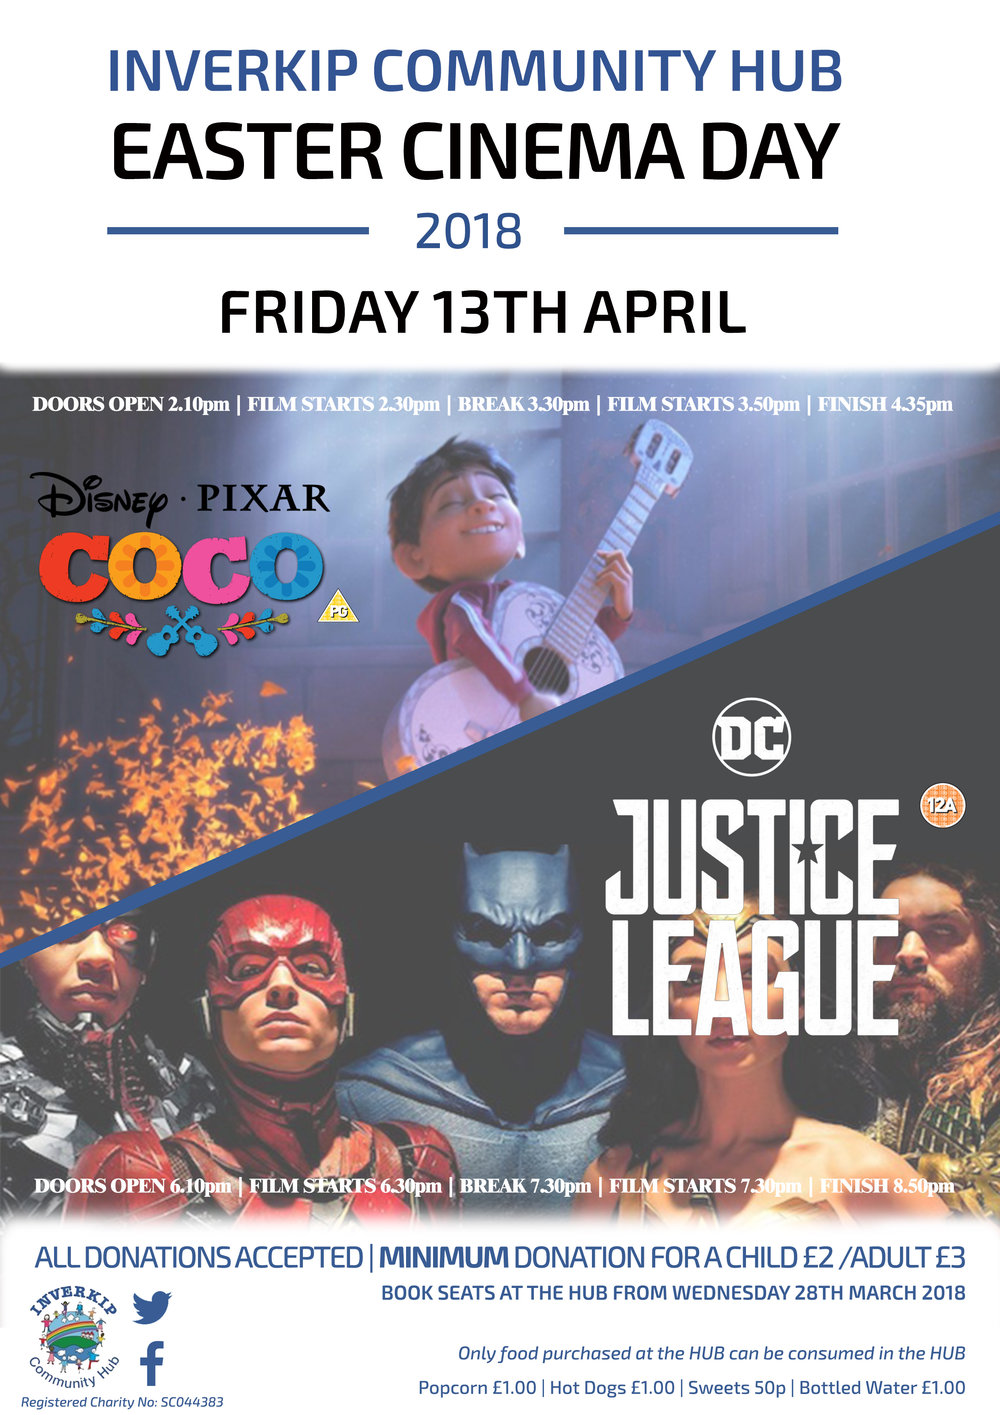 COCO AND JUSTICE LEAGUE POSTER.jpg